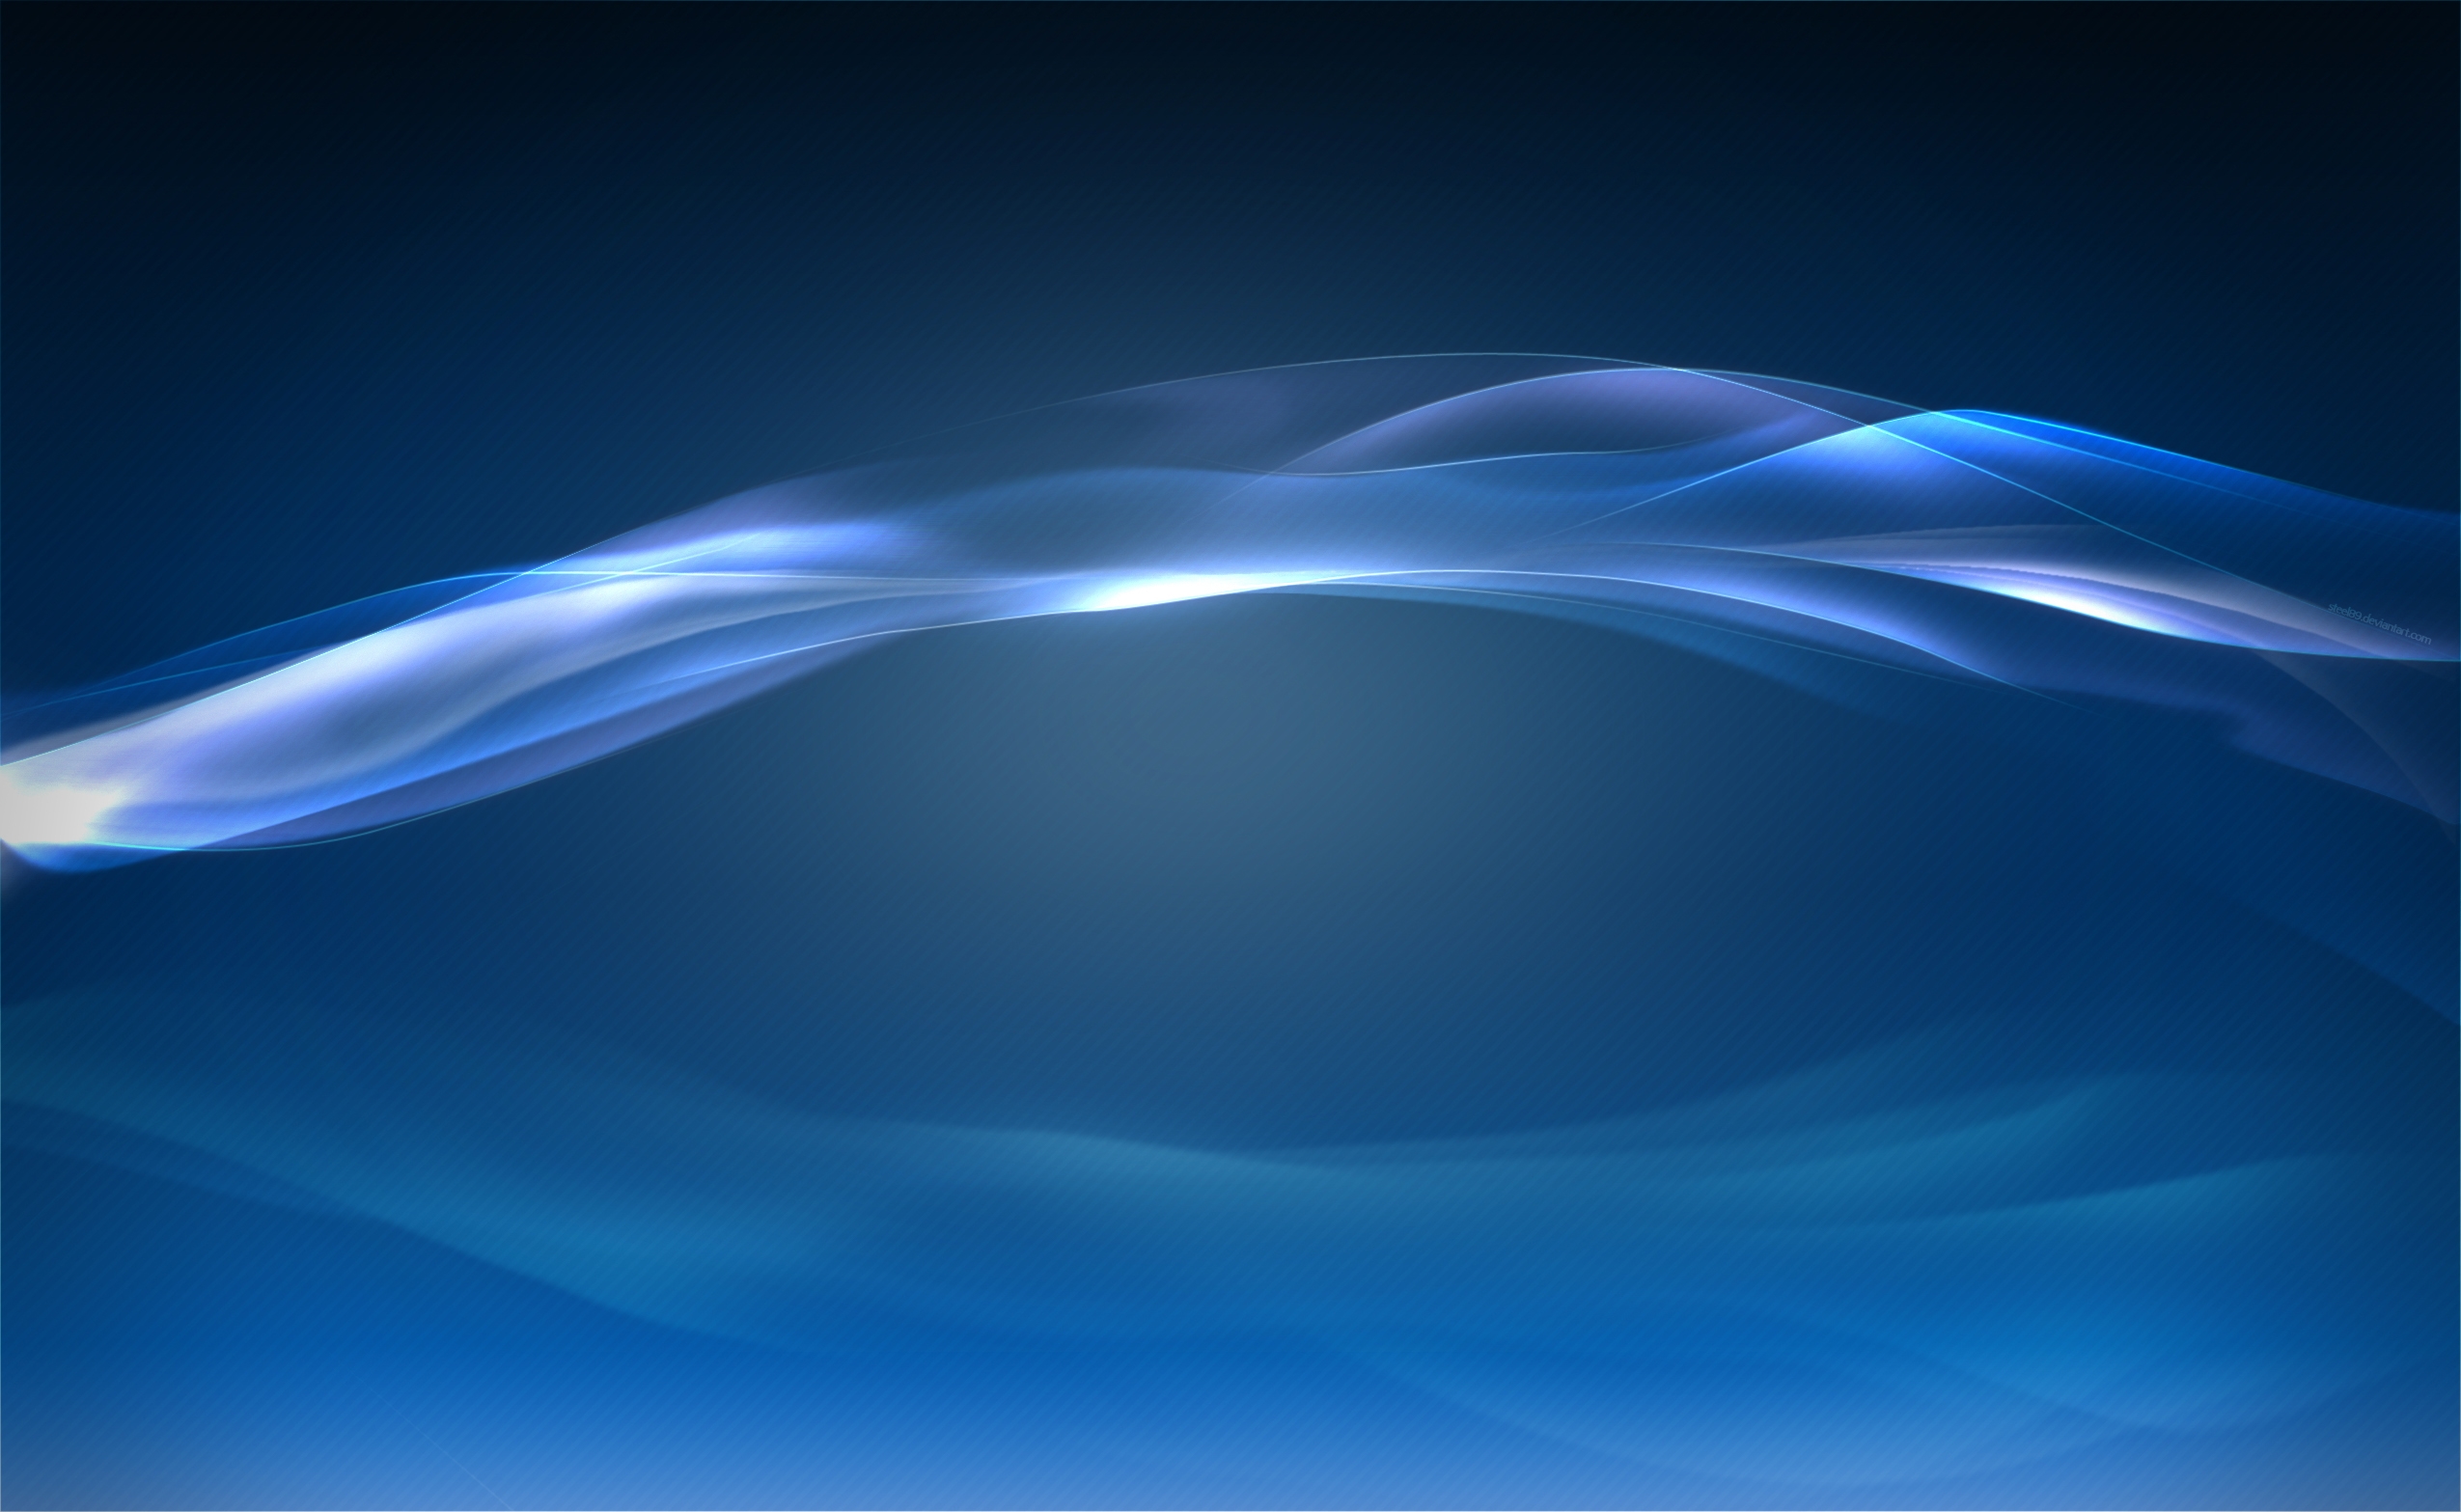 1 dark blue hd wallpapers background images wallpaper for Dark blue wallpaper for walls